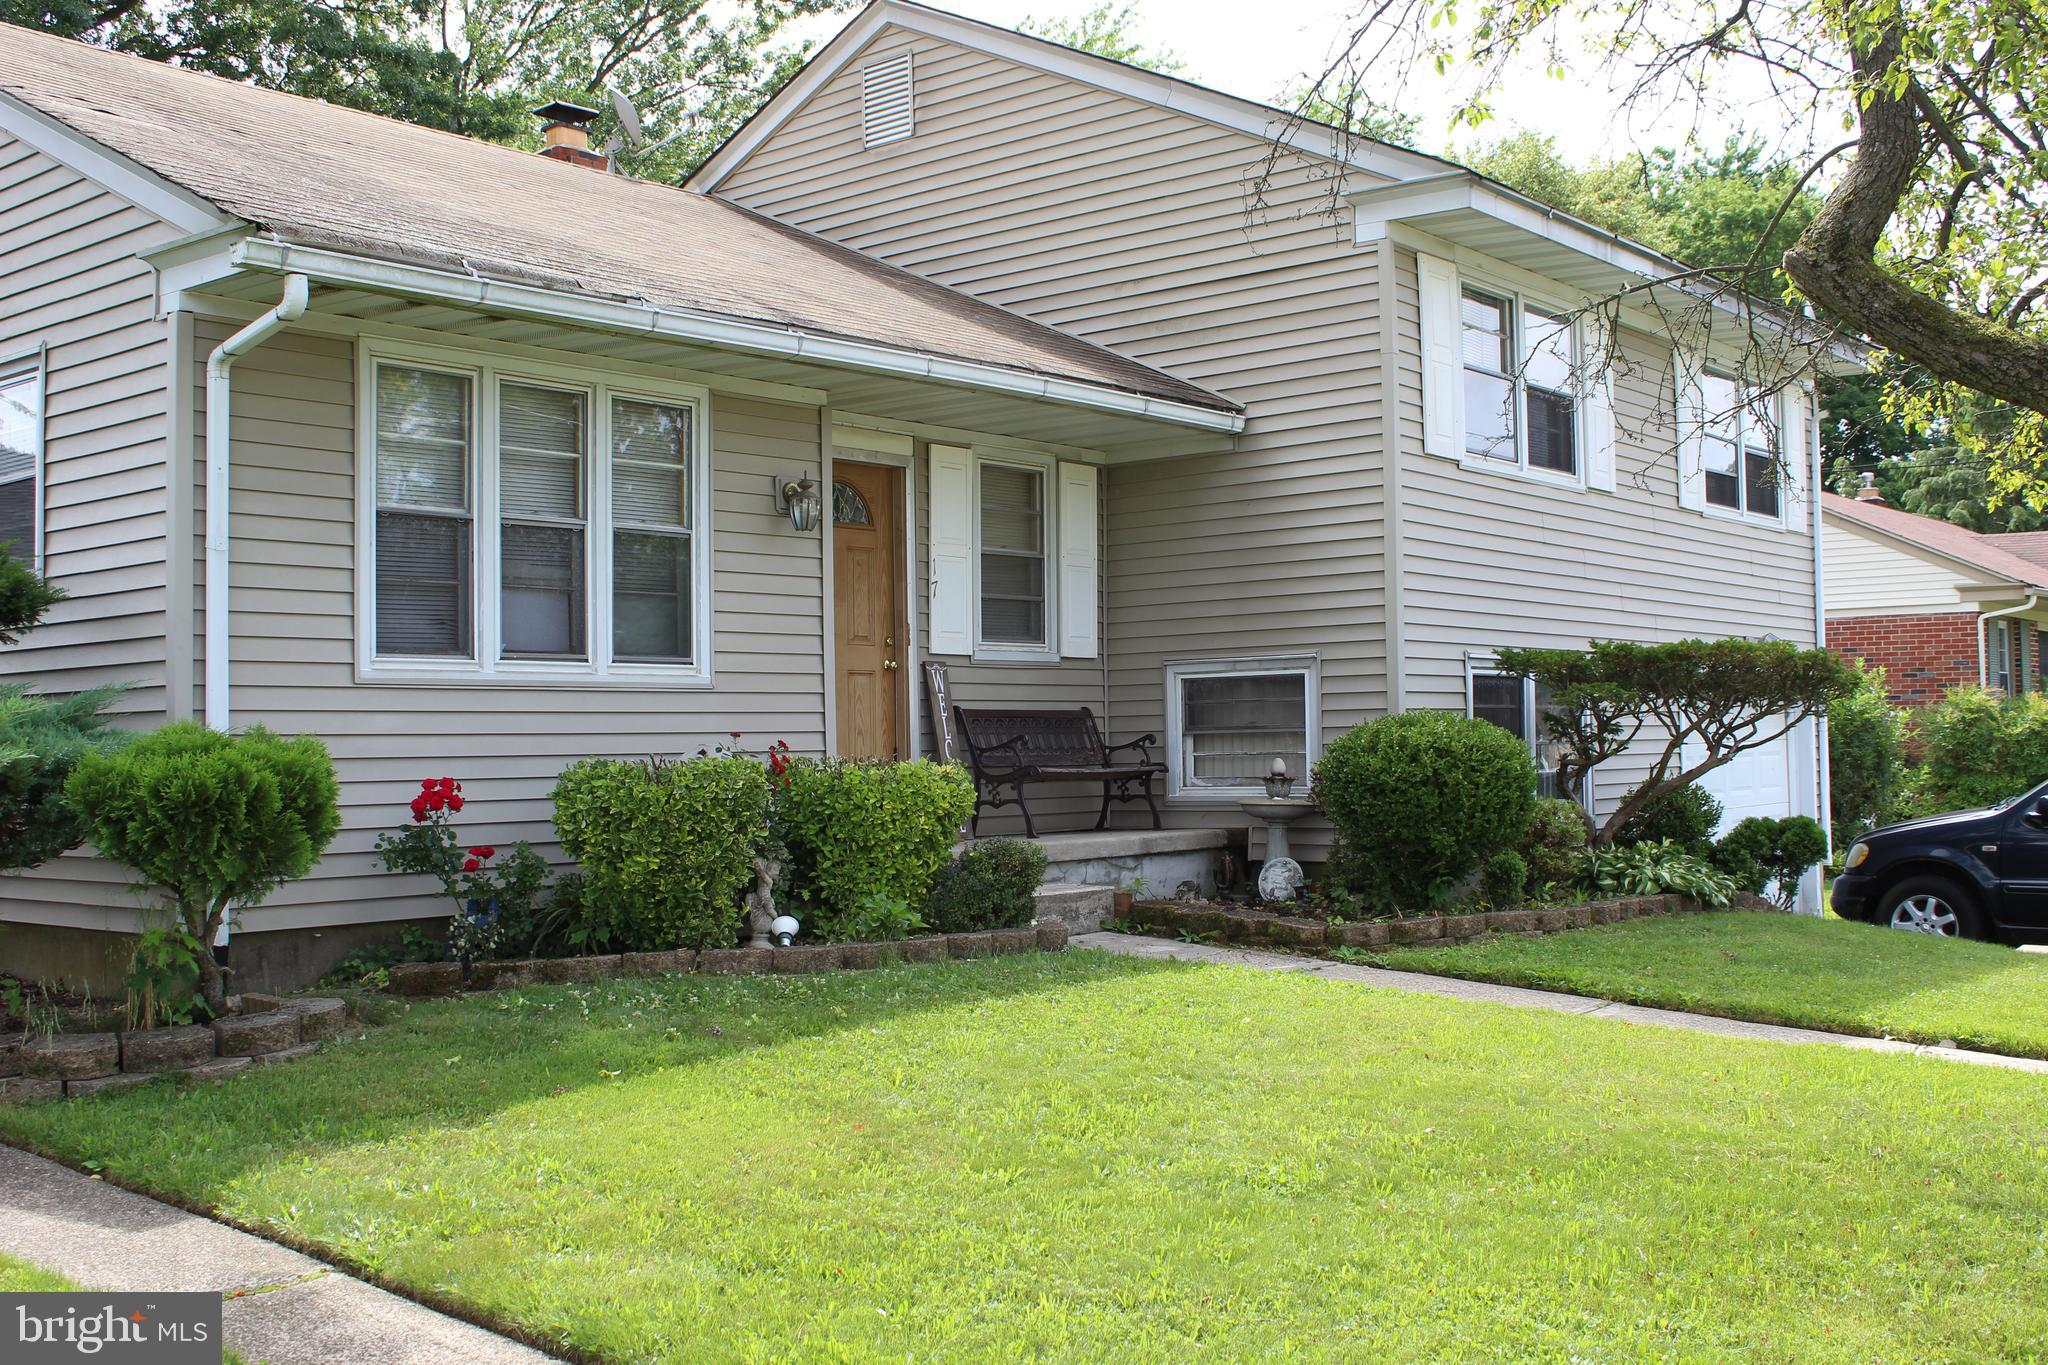 17 Kenwood Dr, Cherry Hill